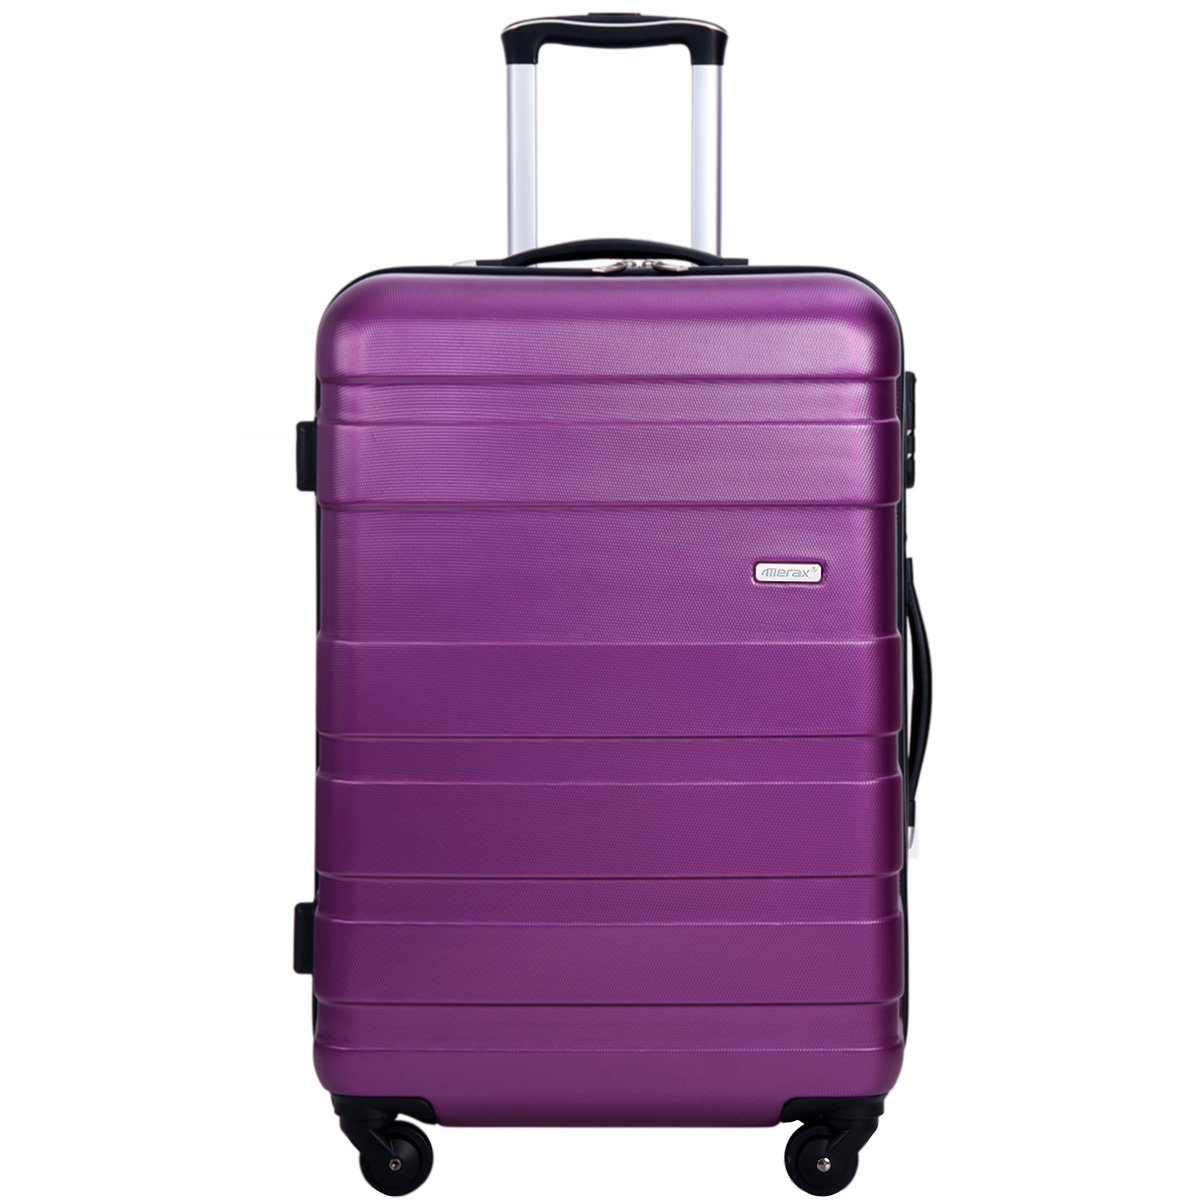 Merax Aphro 20inch Carry On Luggage Lightweight ABS Spinner Suitcase (Purple.)